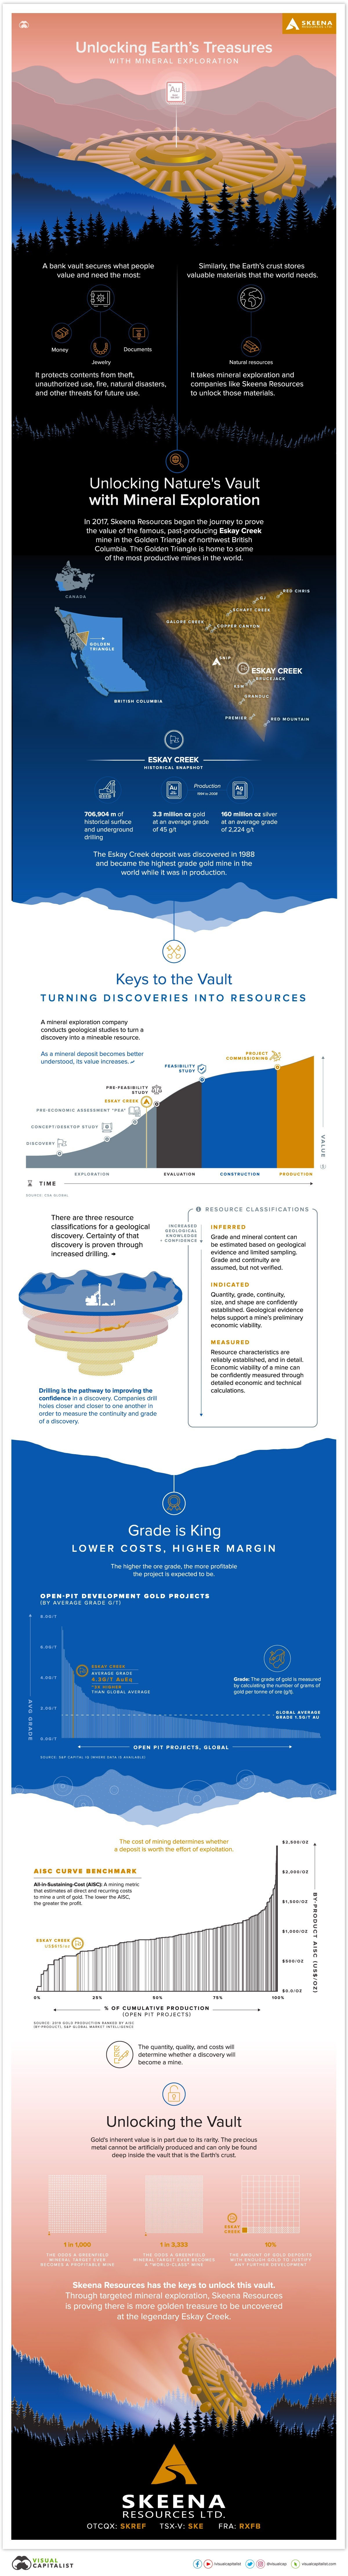 Unlocking Earth's Treasures with Mineral Exploration #infographic